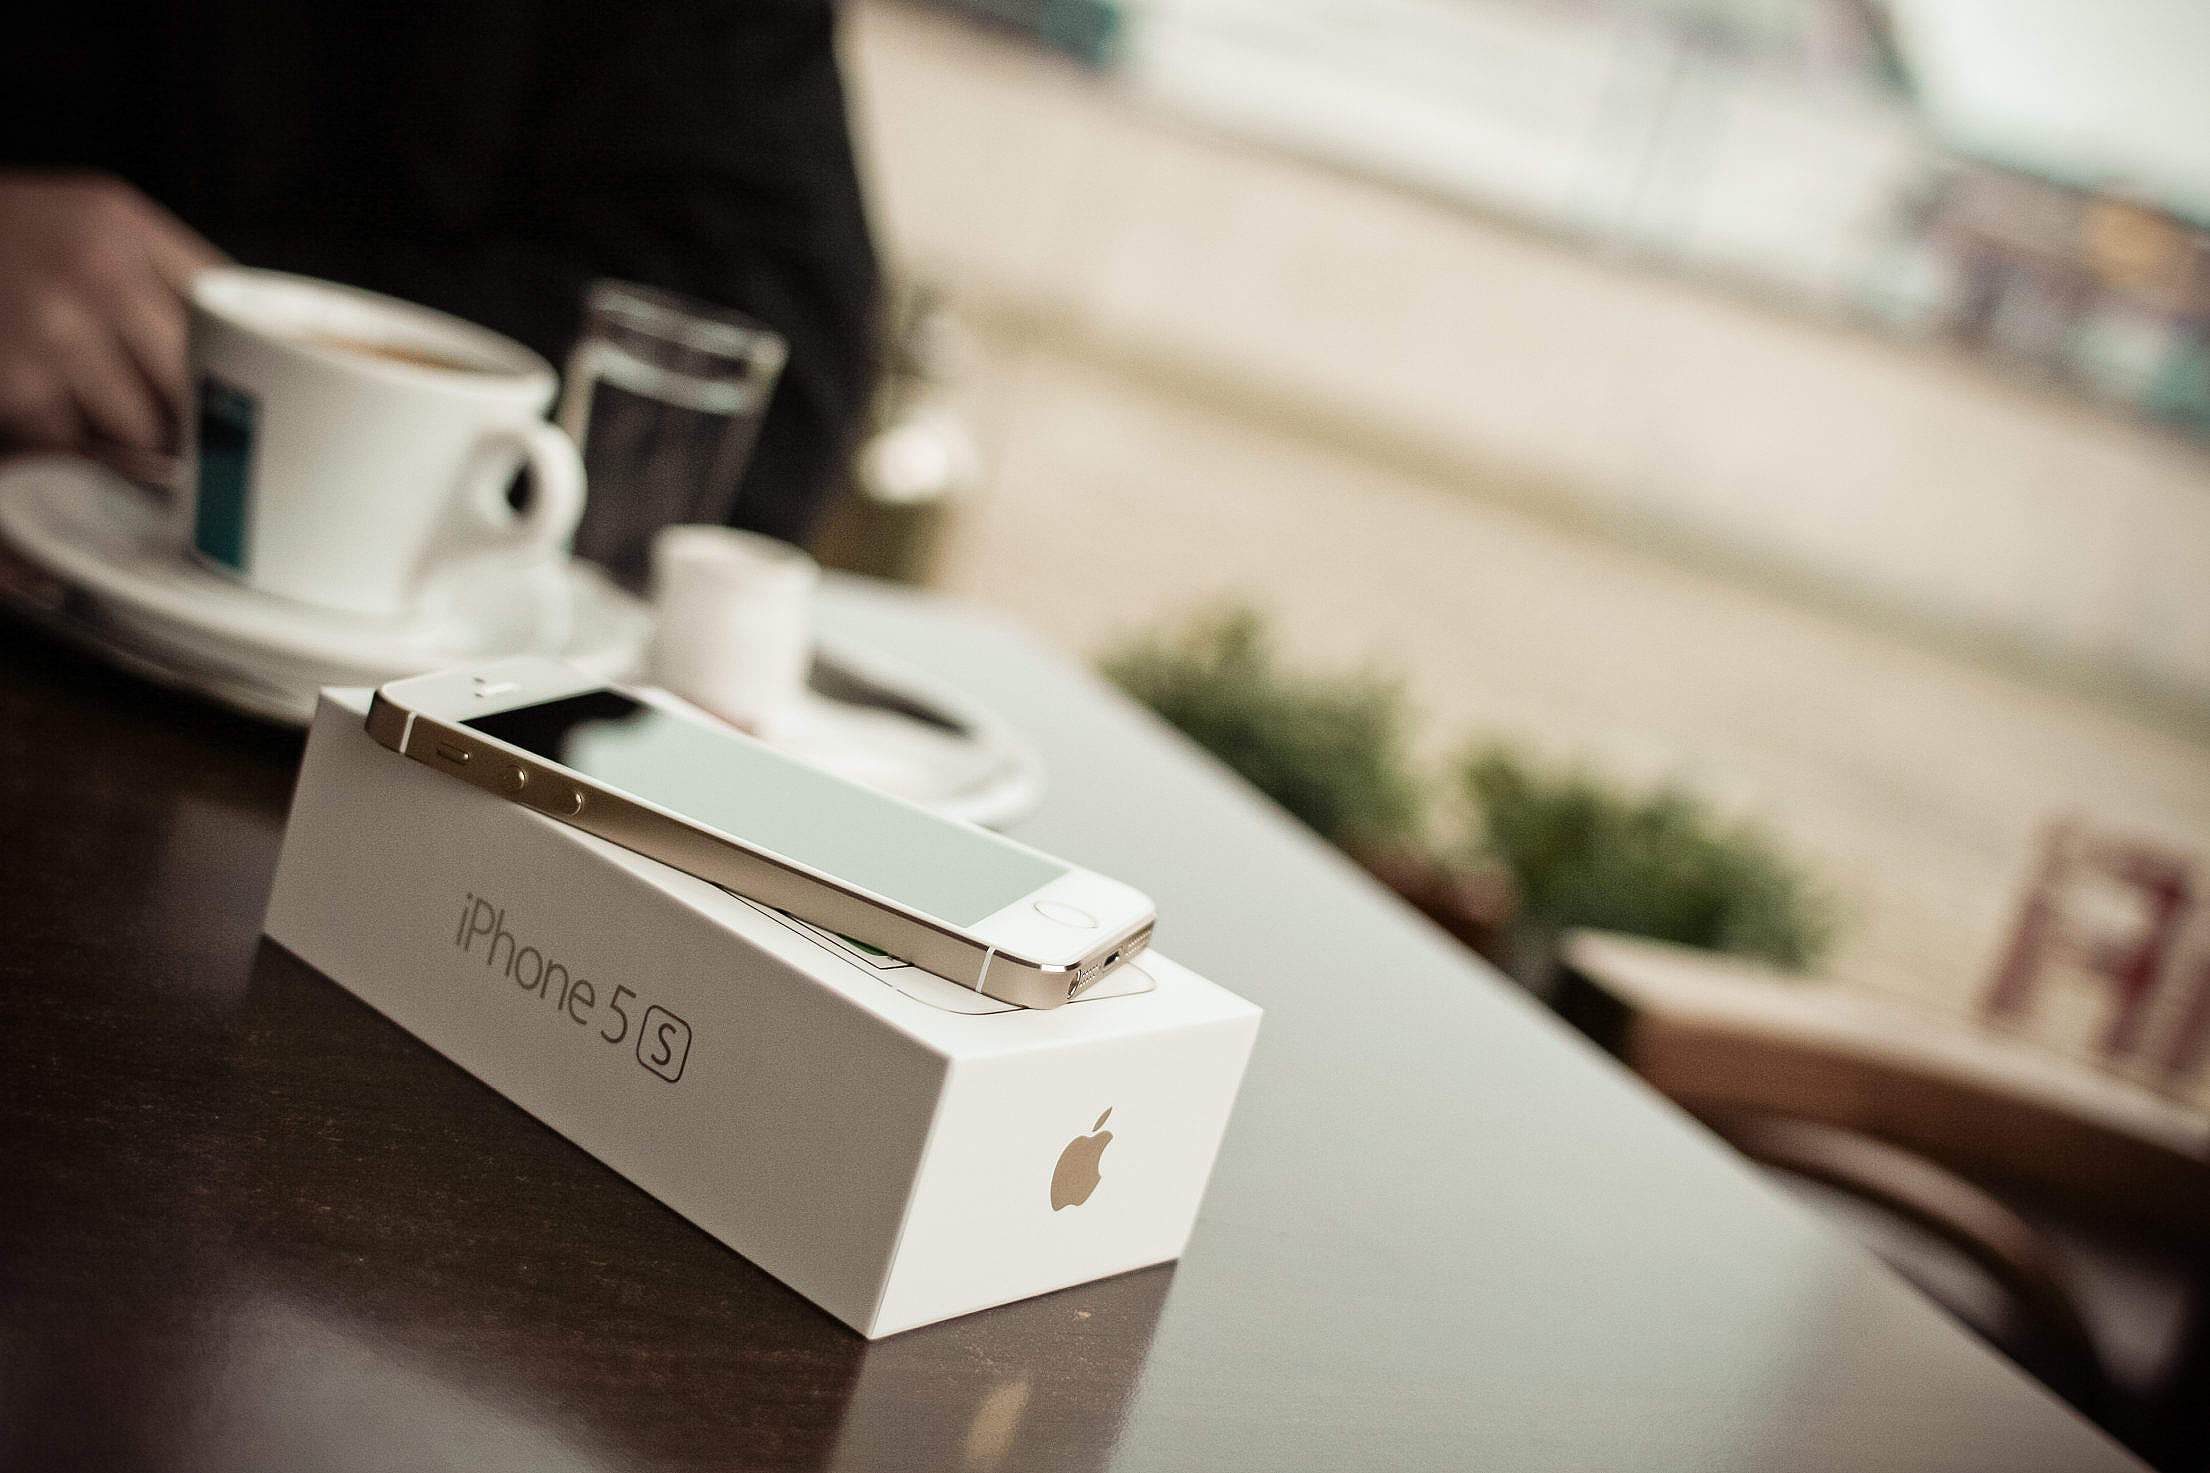 New iPhone 5S Gold in cafe Free Stock Photo